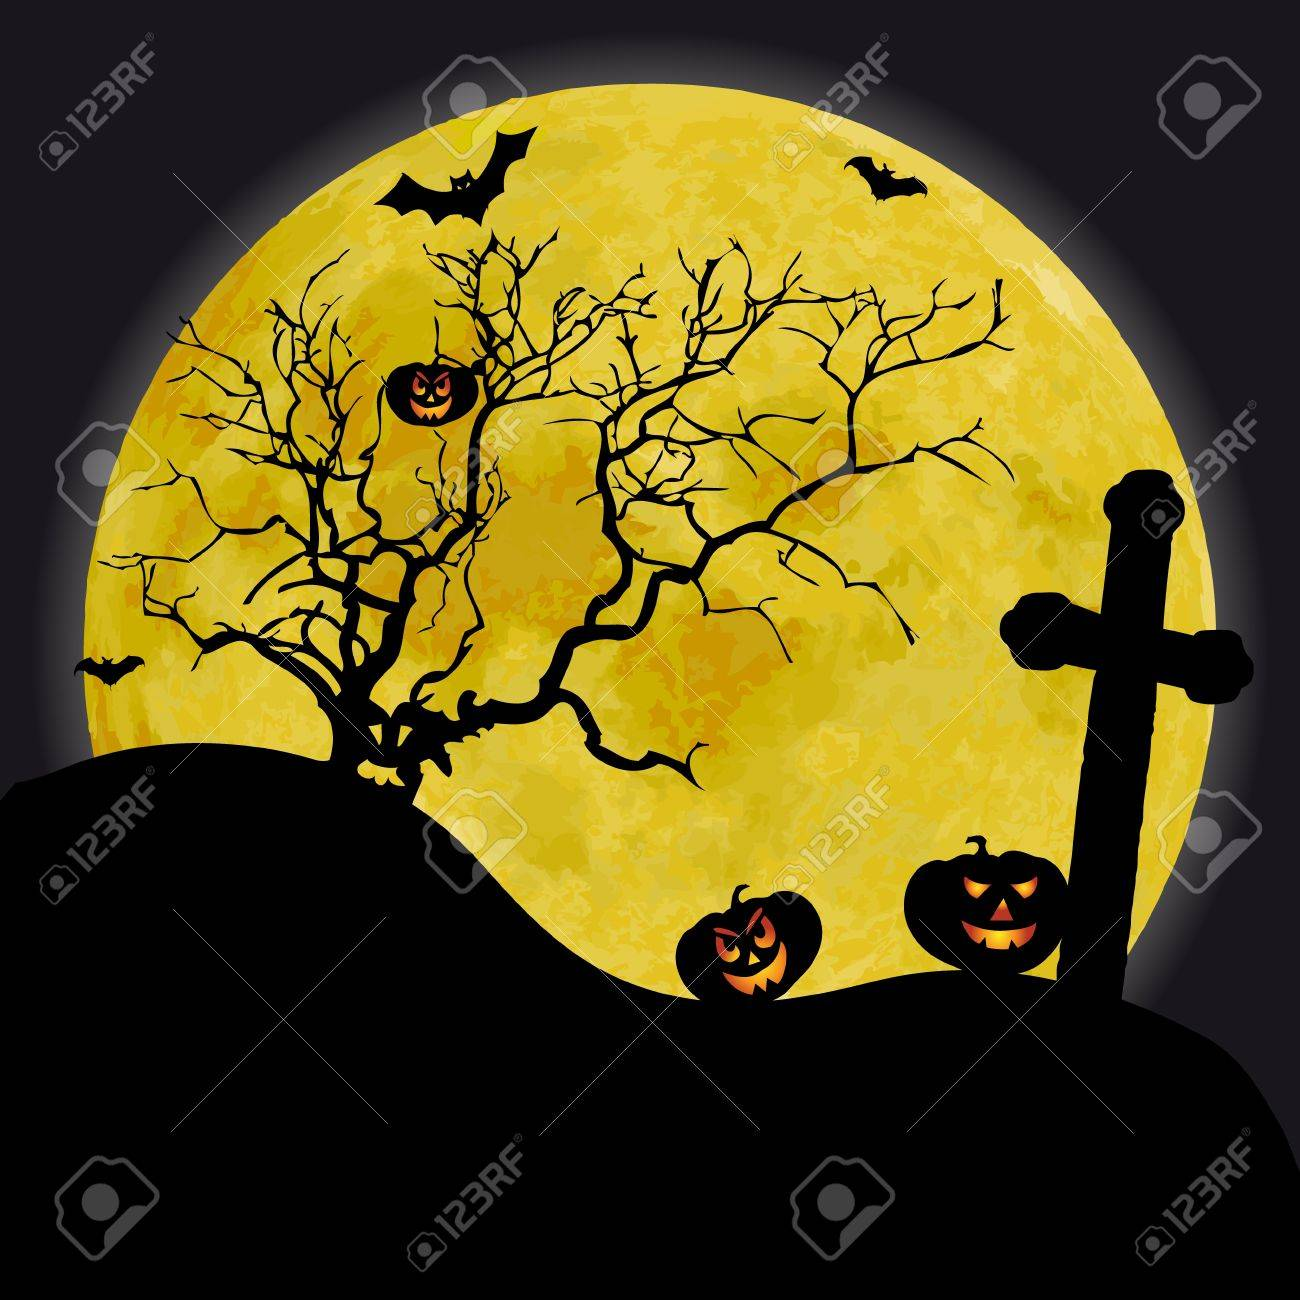 scary halloween background with yellow moon and old tree stock photo